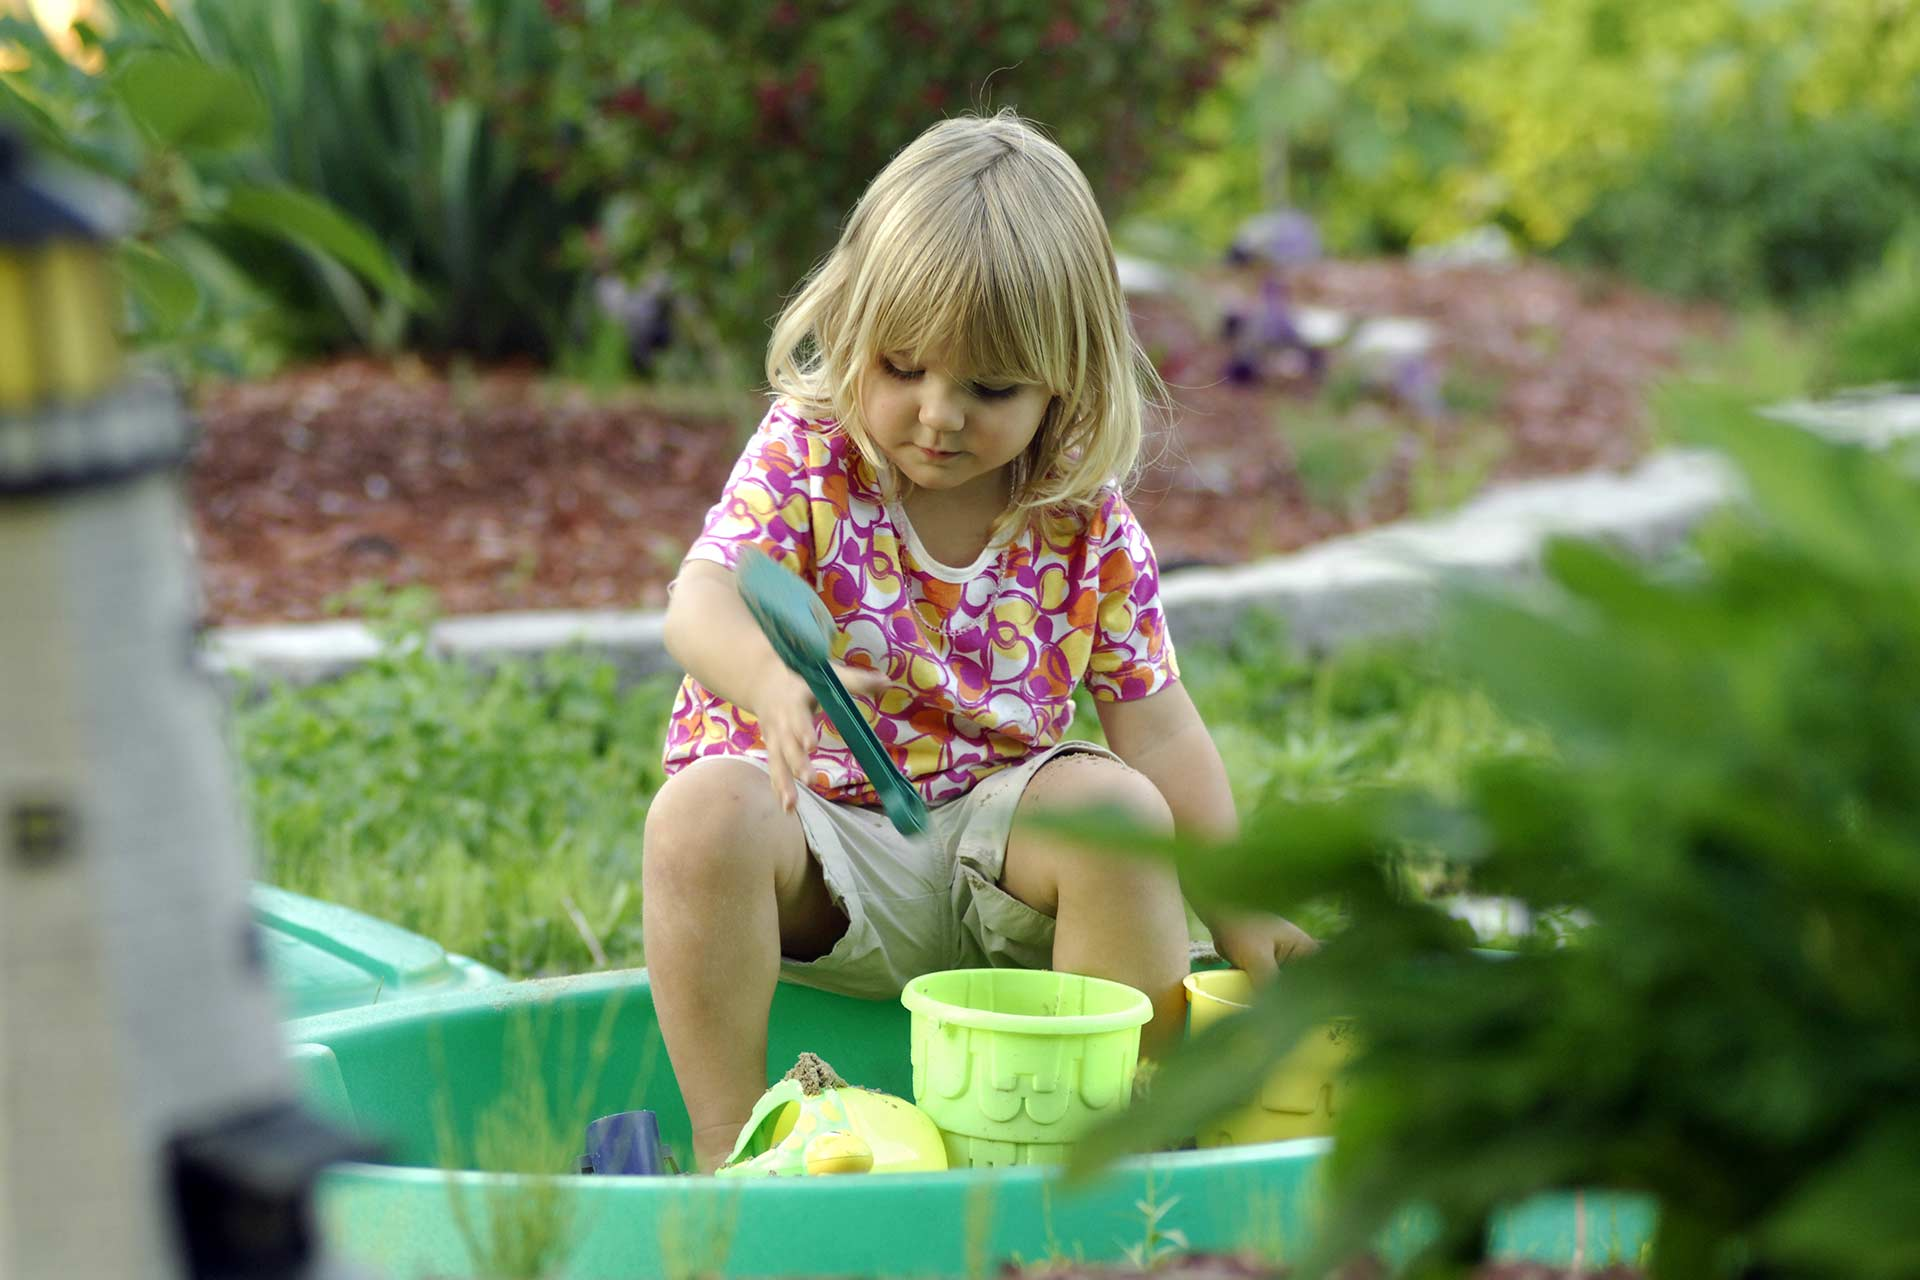 Playing-it-safe-in-the-backyard